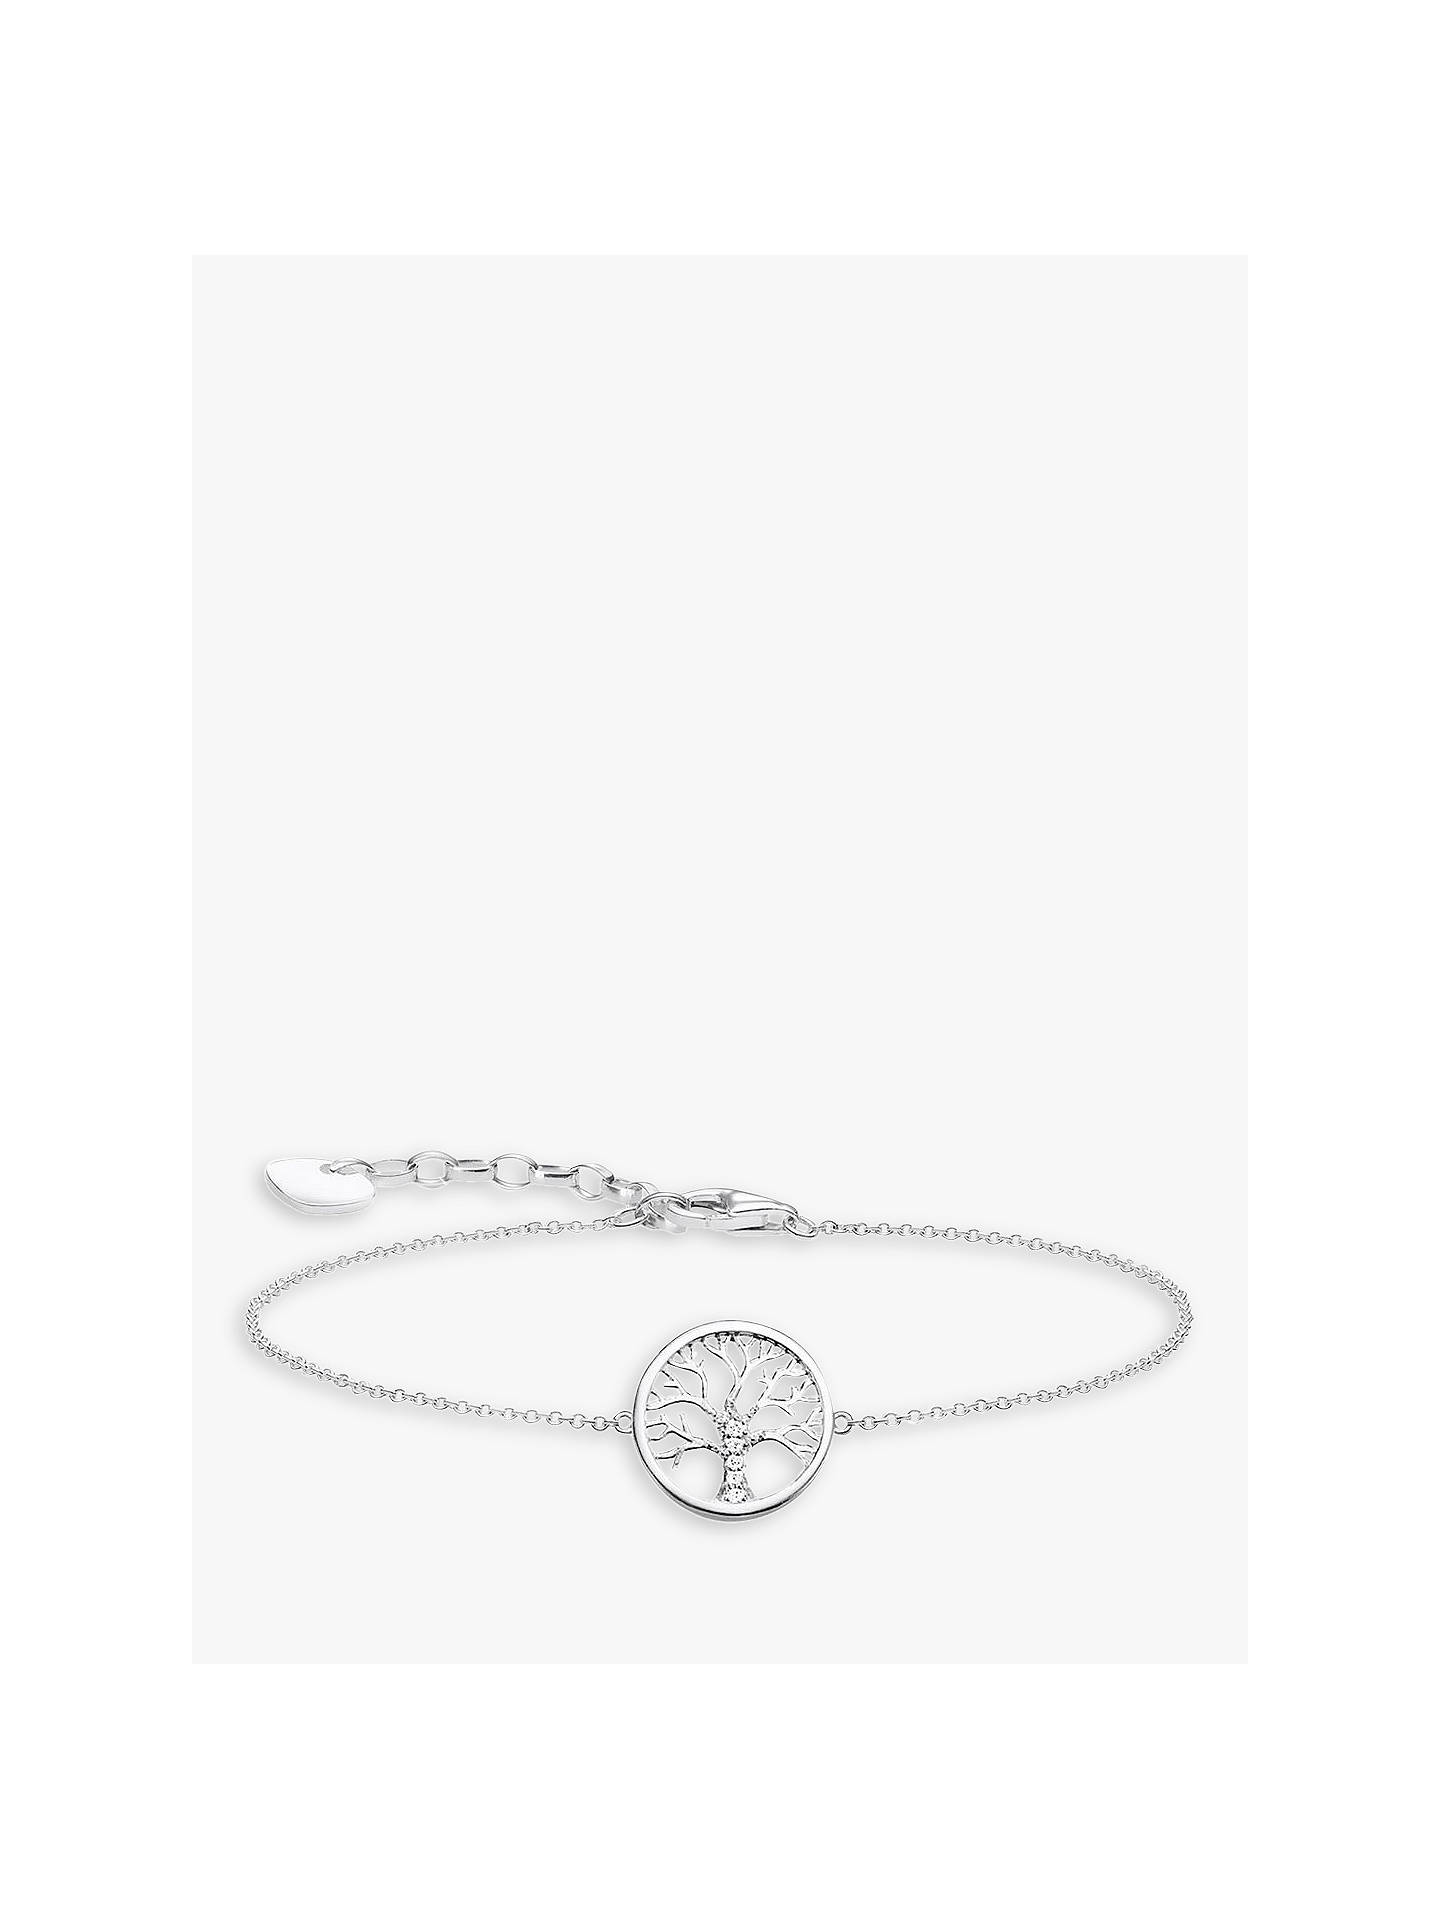 BuyTHOMAS SABO Glam & Soul Tree of Love Charm Bracelet, Silver Online at johnlewis.com